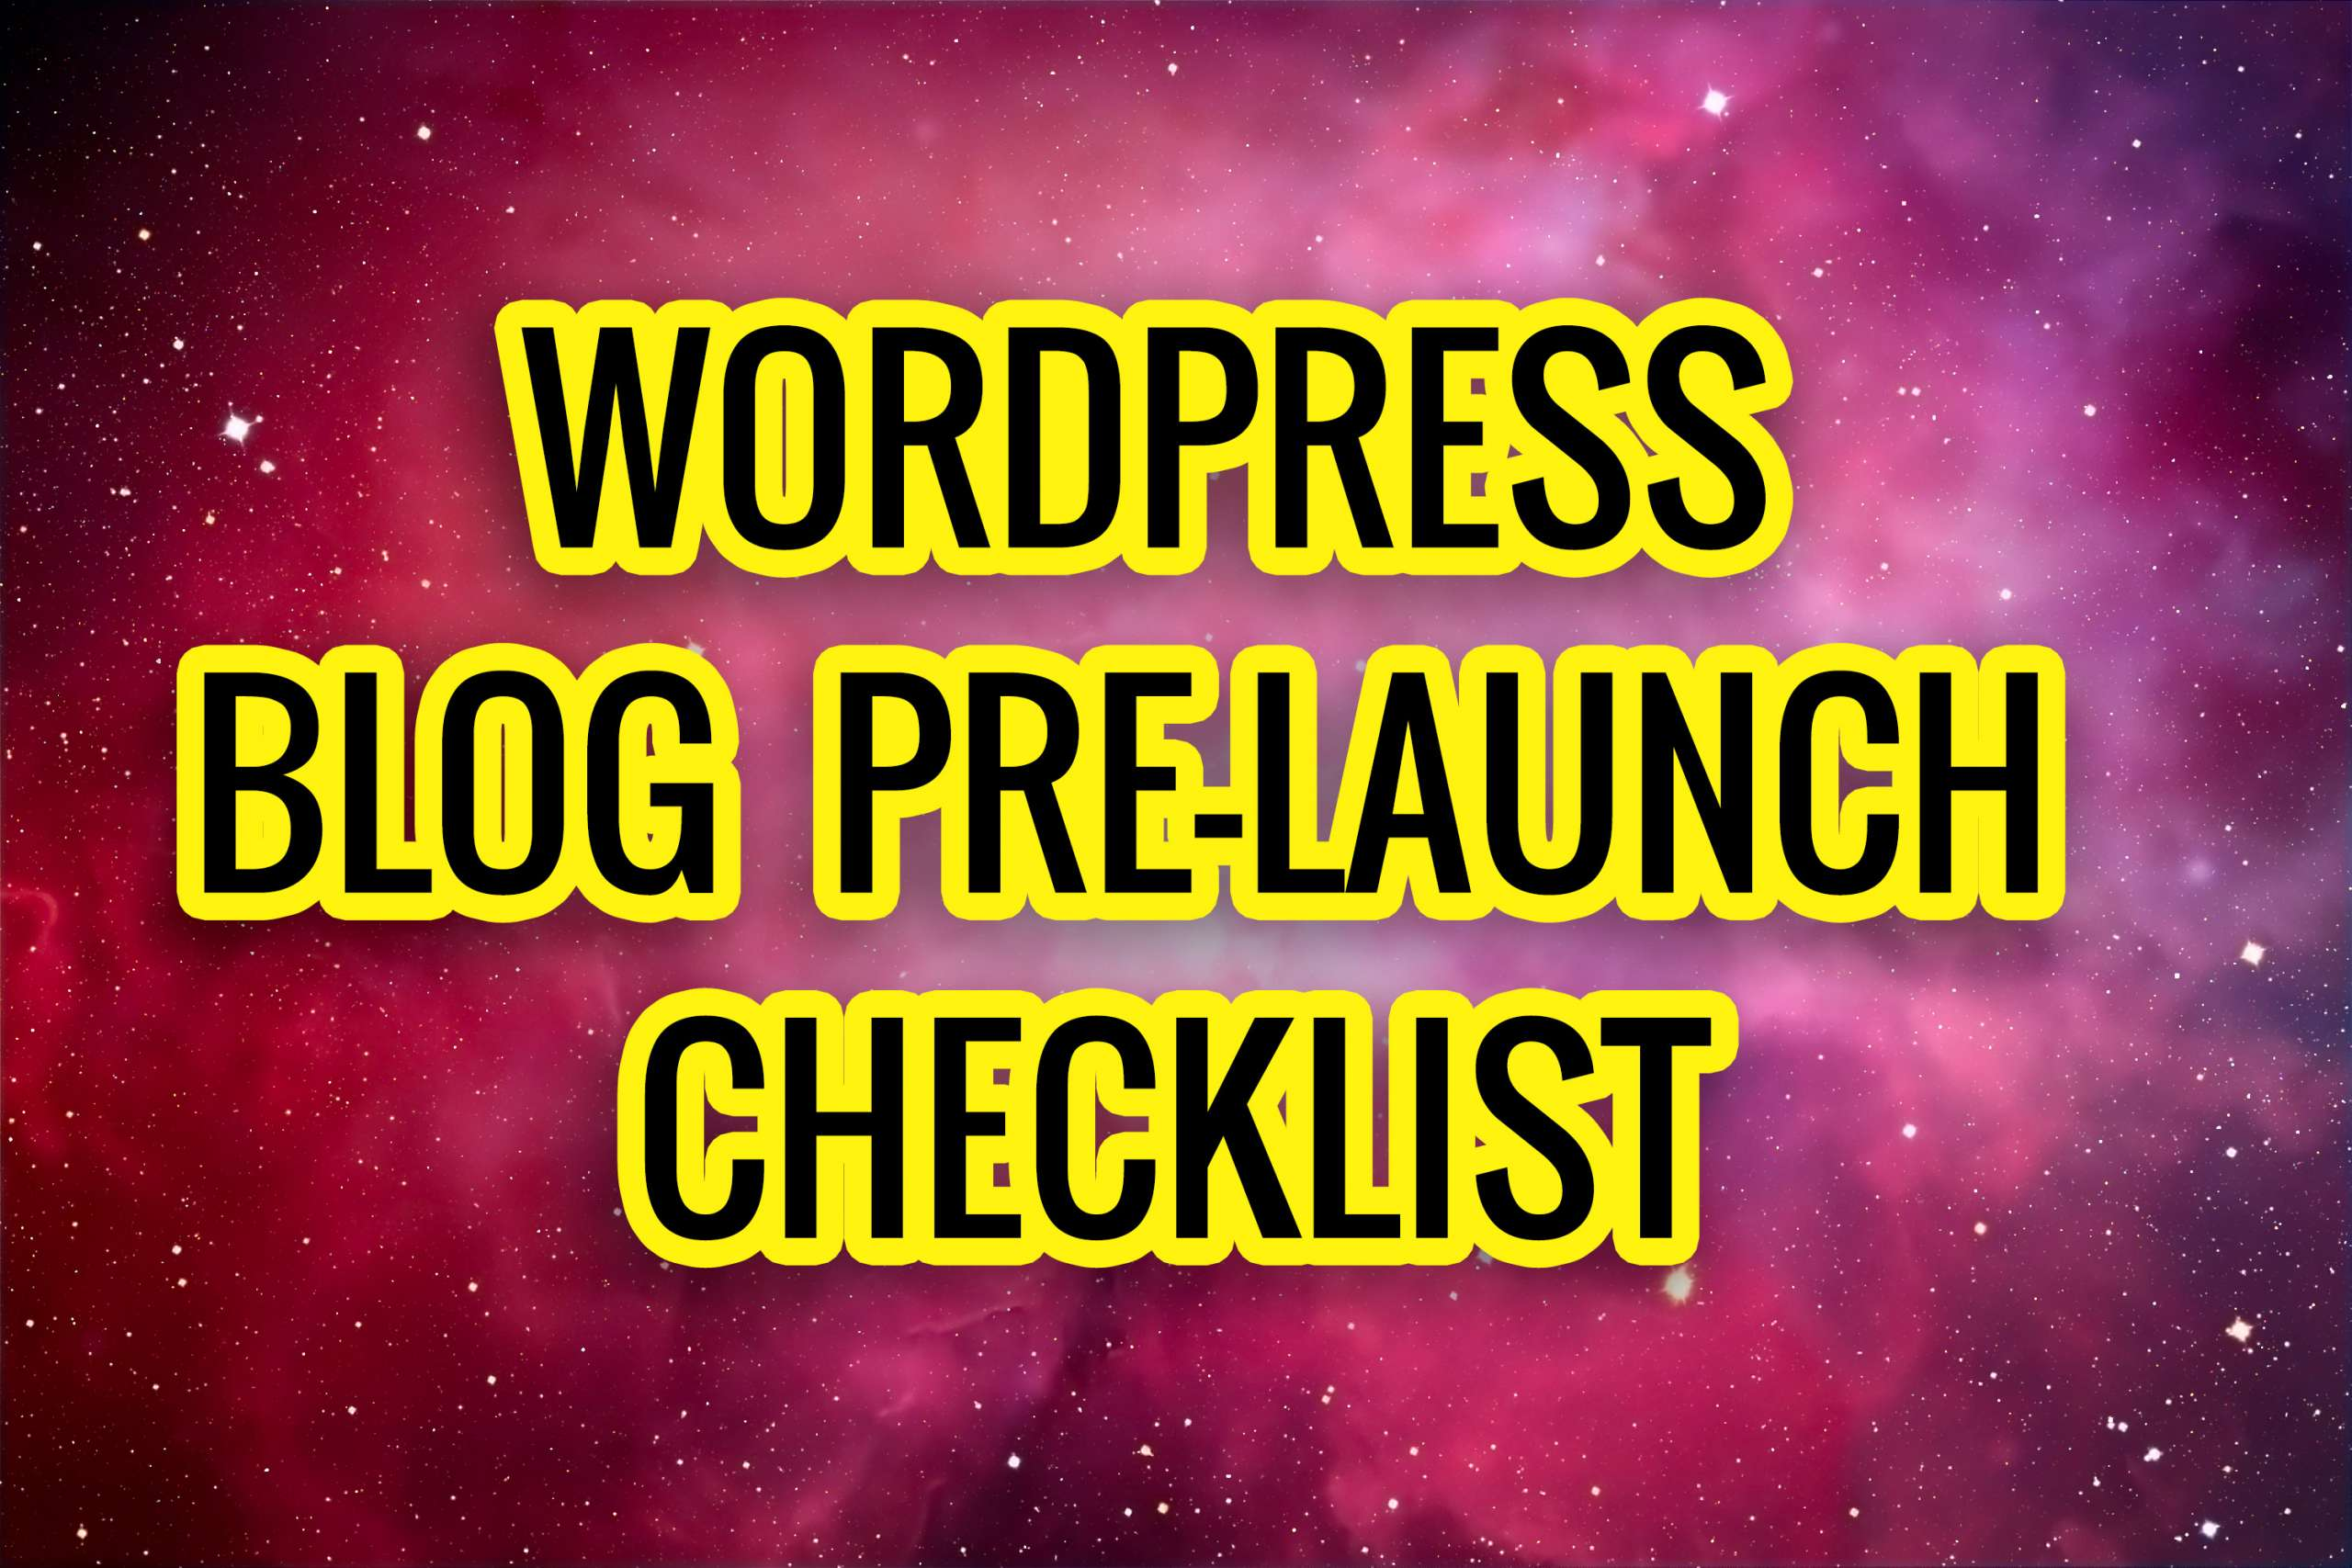 WordPress Blog Pre-Launch Checklist